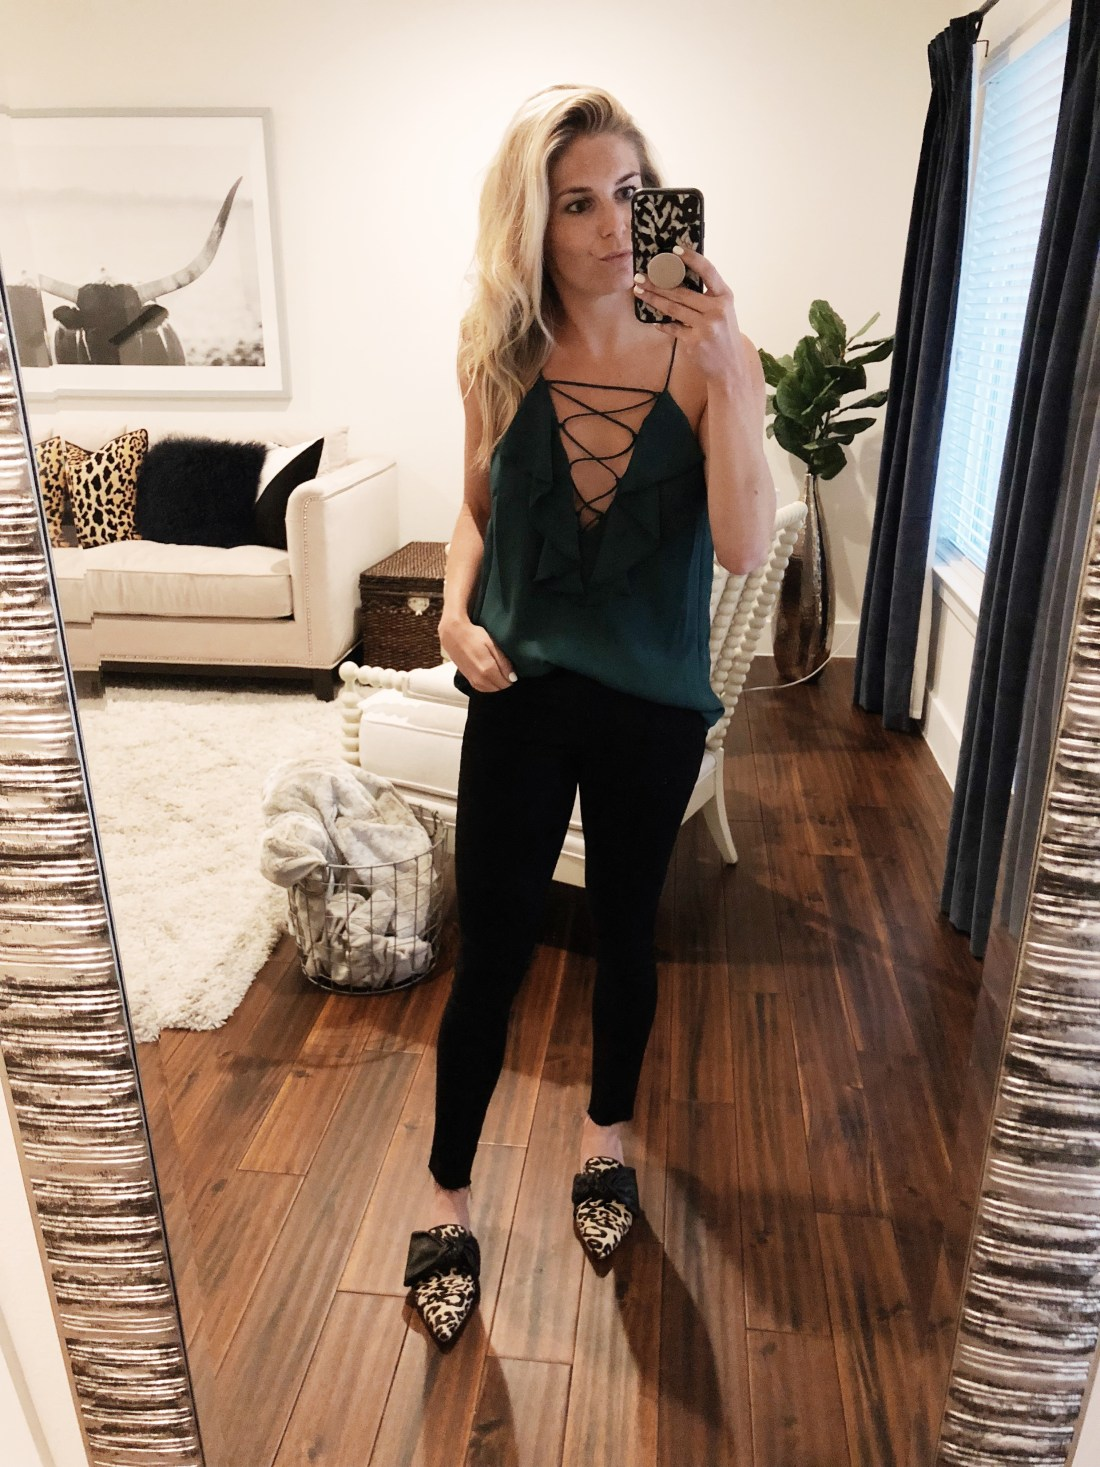 WAYF Green Lace-Up Ruffle Cami // Size M (go a size up)  Rag & Bone Black Jeans // Size 25  Louiso Et Cie Leopard Flats  // Size 7 1/2